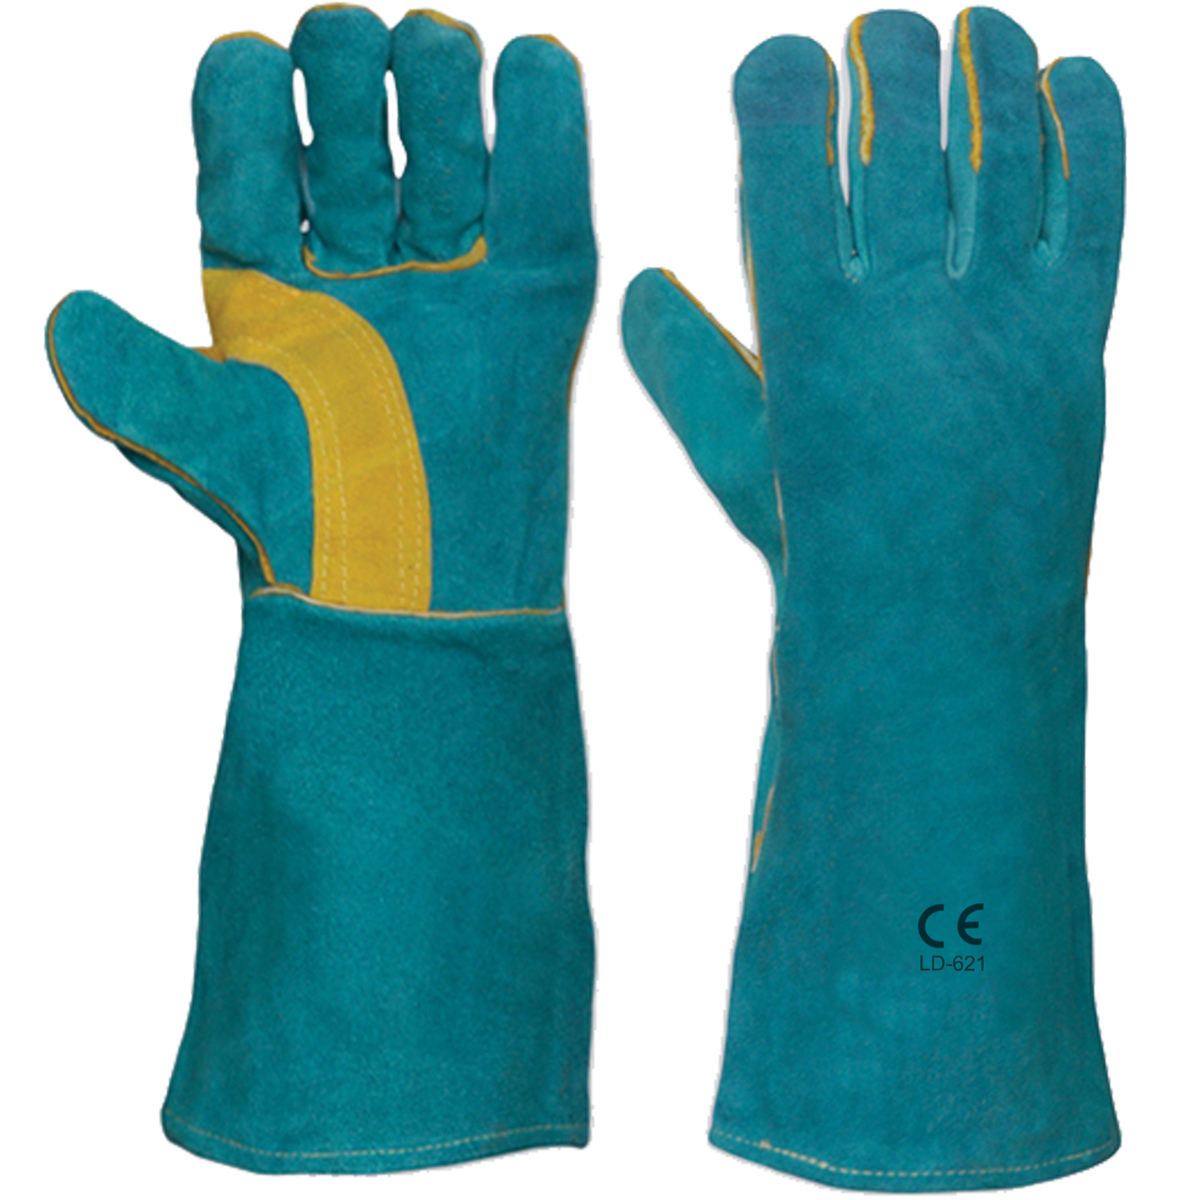 Cow Split Welding Gloves Yellow Blue 16 Inch Sturdy Heat Resistant Fire Resistant Premium Cow Split Leather TIG Welding Gloves